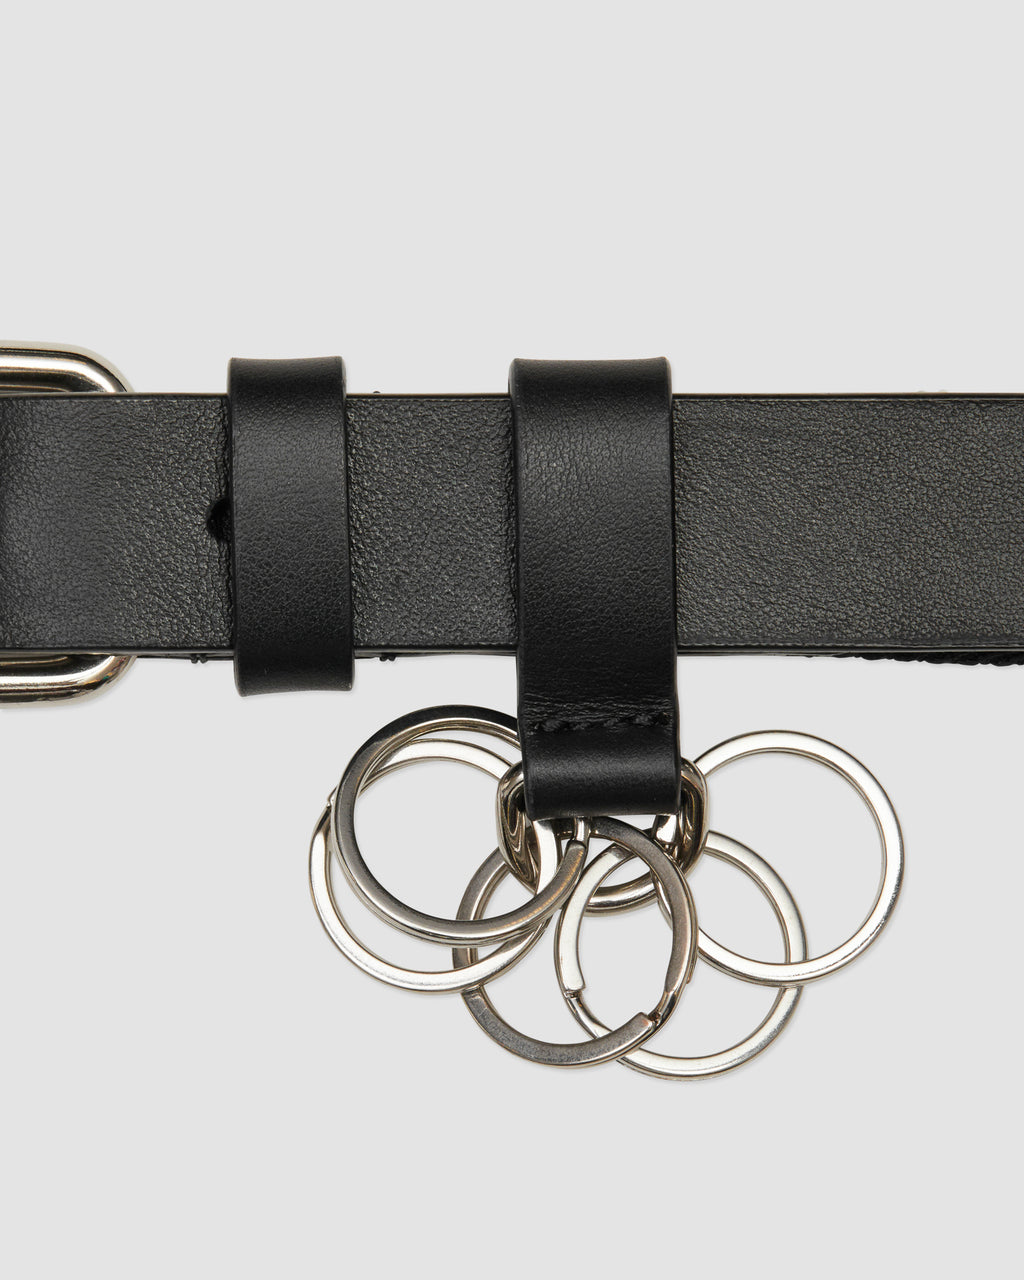 MEDIUM ROLLERCOASTER BELT WITH RINGS